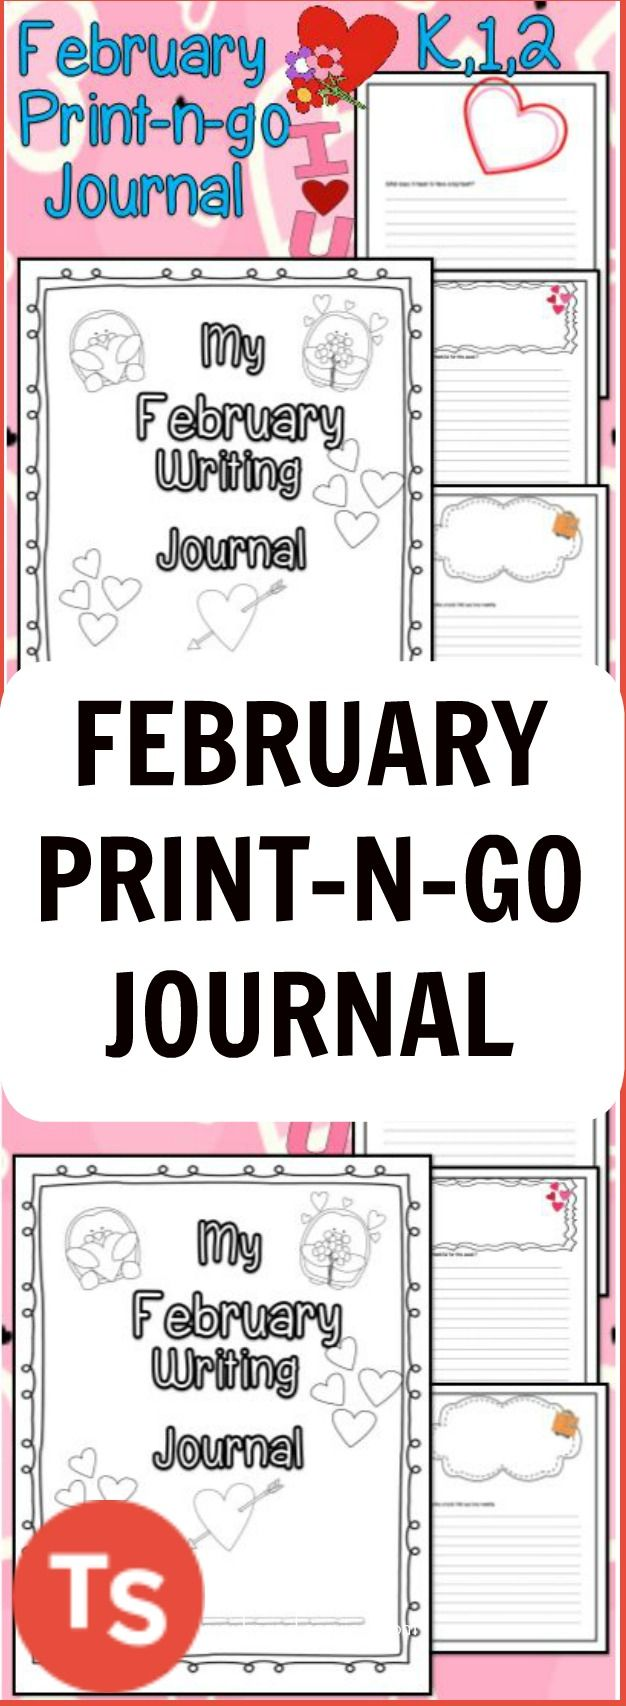 This Super Cute Writing Journal comes with perfect writing prompts for the month of February! It comes with pages lined for the Kinder writer, as well as, regular lined pages for the more advanced writer. YOU choose which style of page is best for your students. There is a space at the top of each page for the kids to draw about what they are writing.#february #elementary #journal